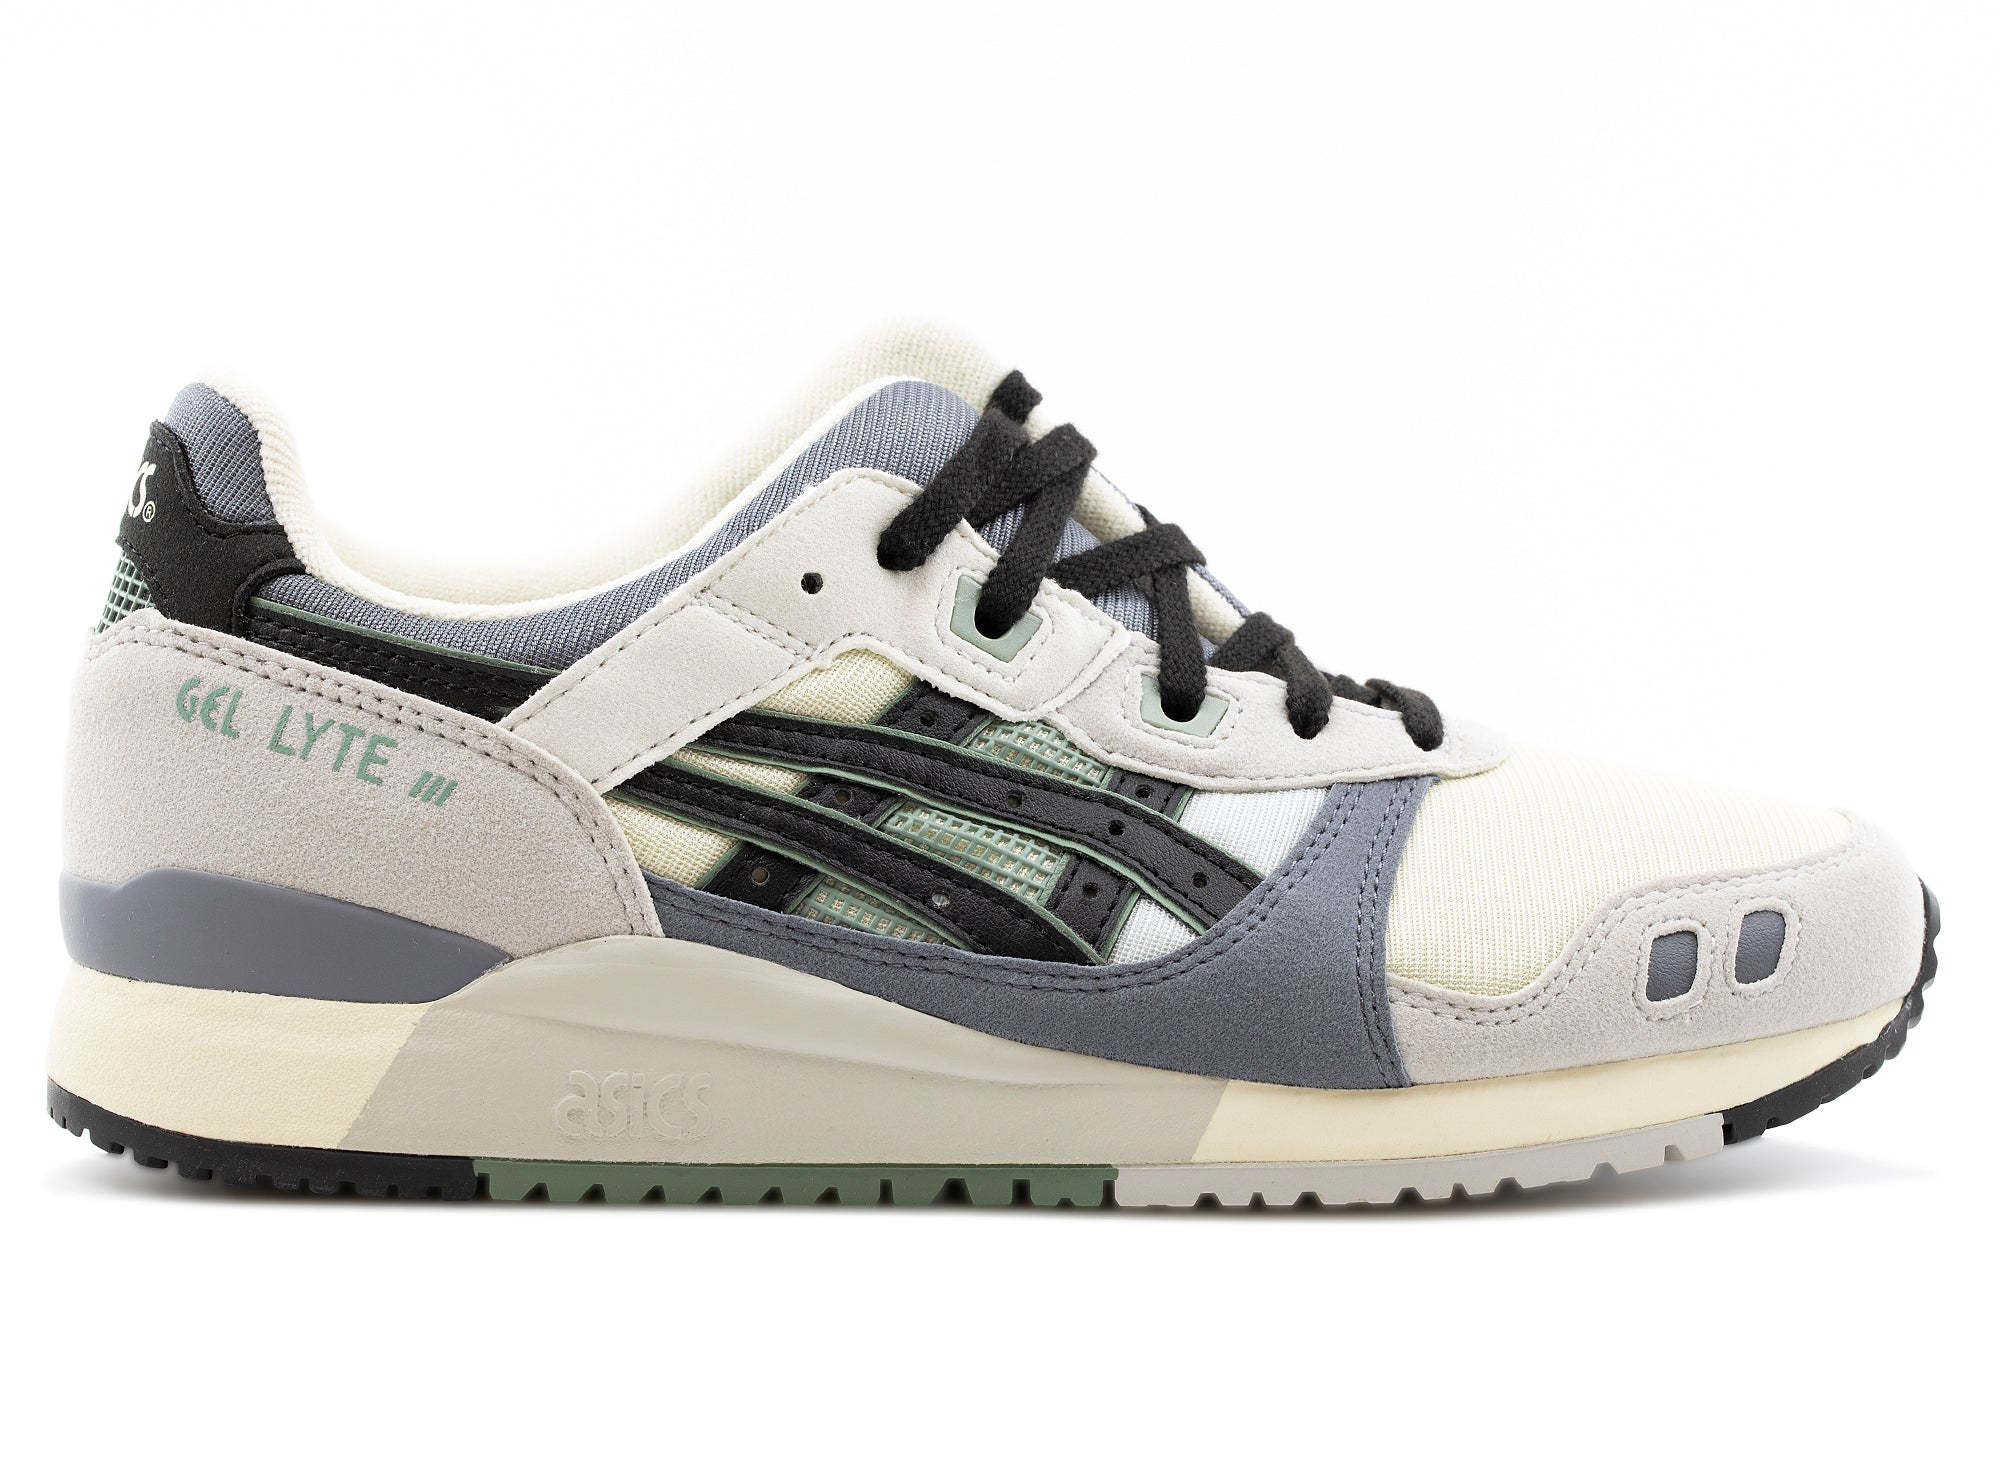 ASICS Gel-Lyte III OG 'Back Streets of Japan' Ivory xld